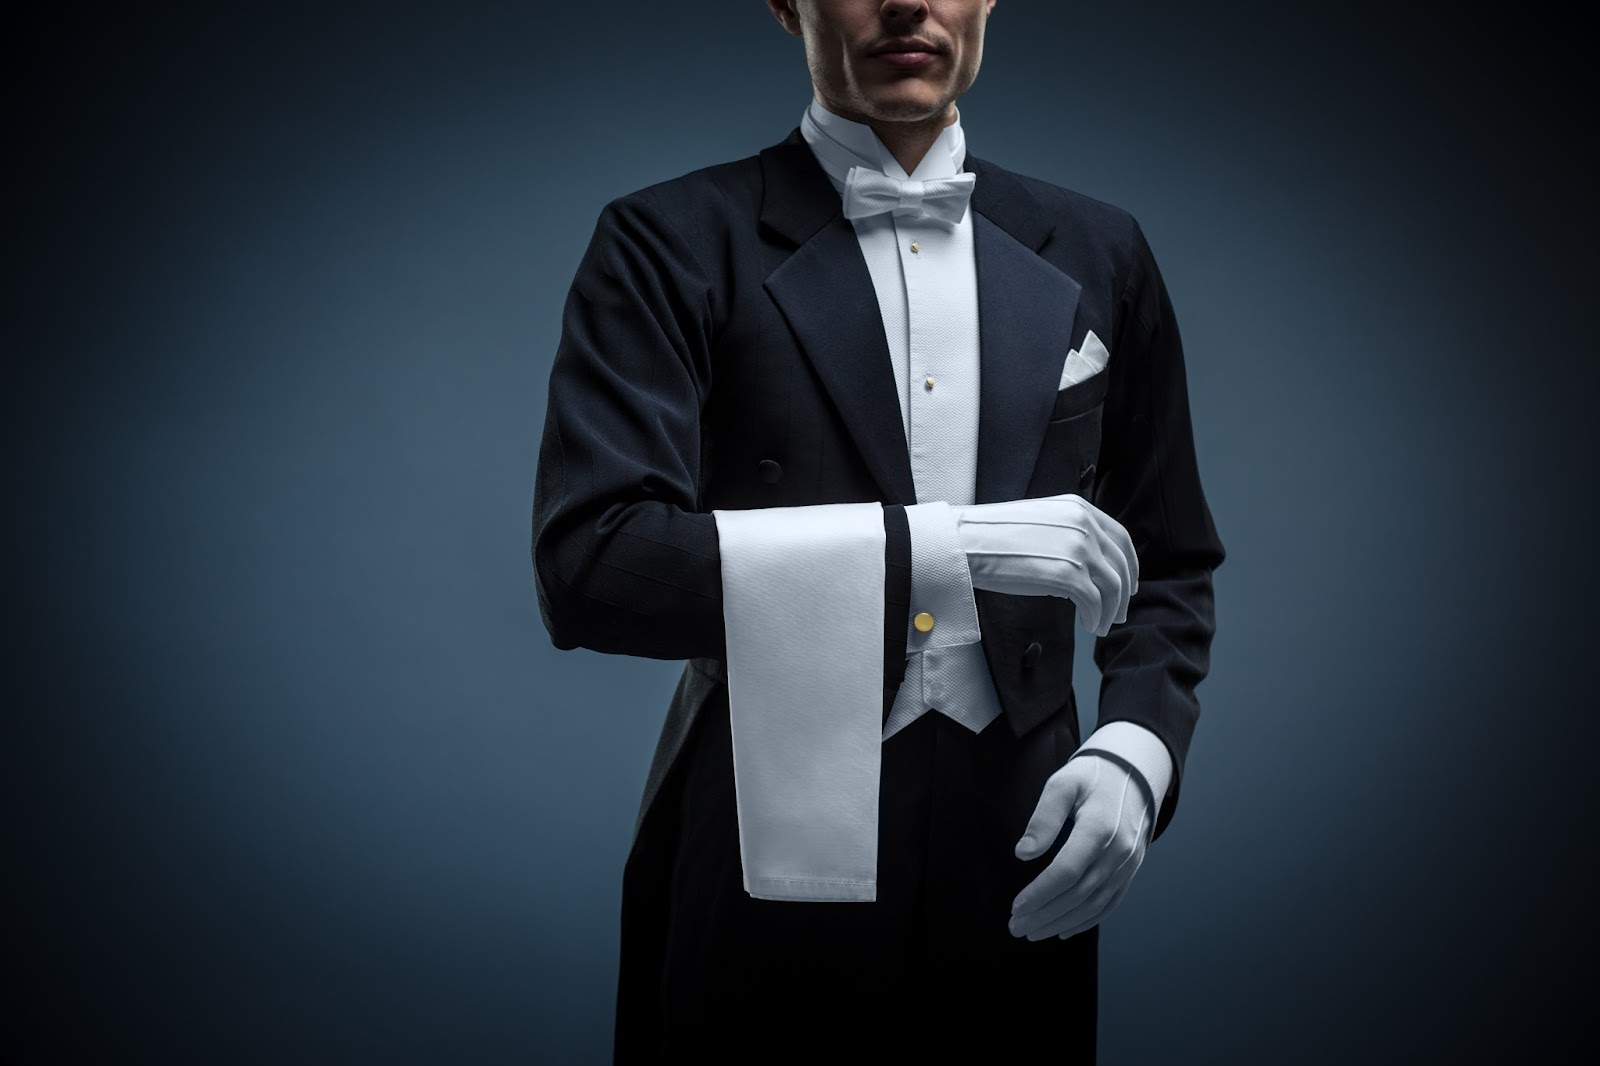 Waiter in a tuxedo on a black background